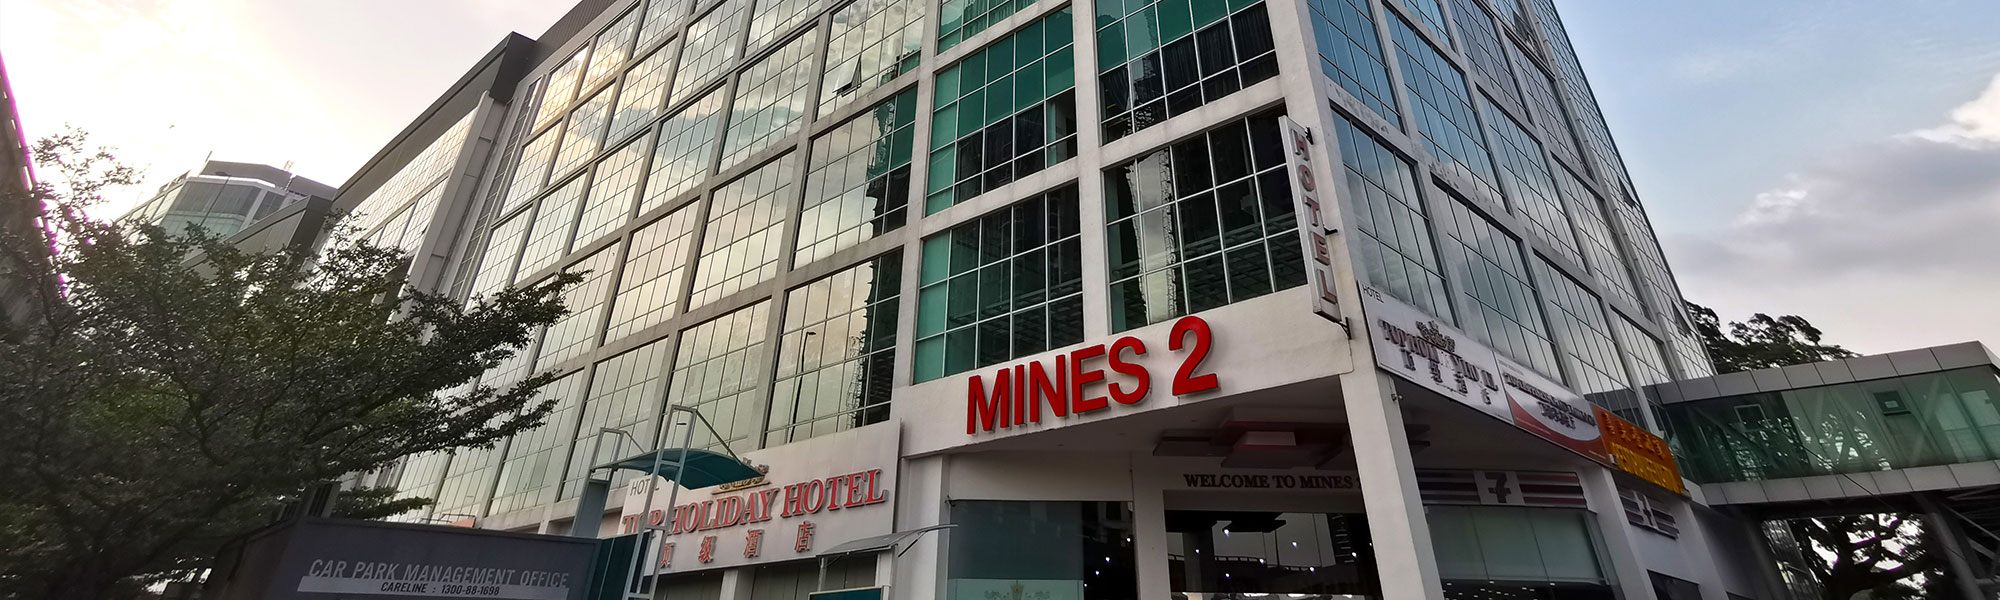 JLColiving-Mines-1